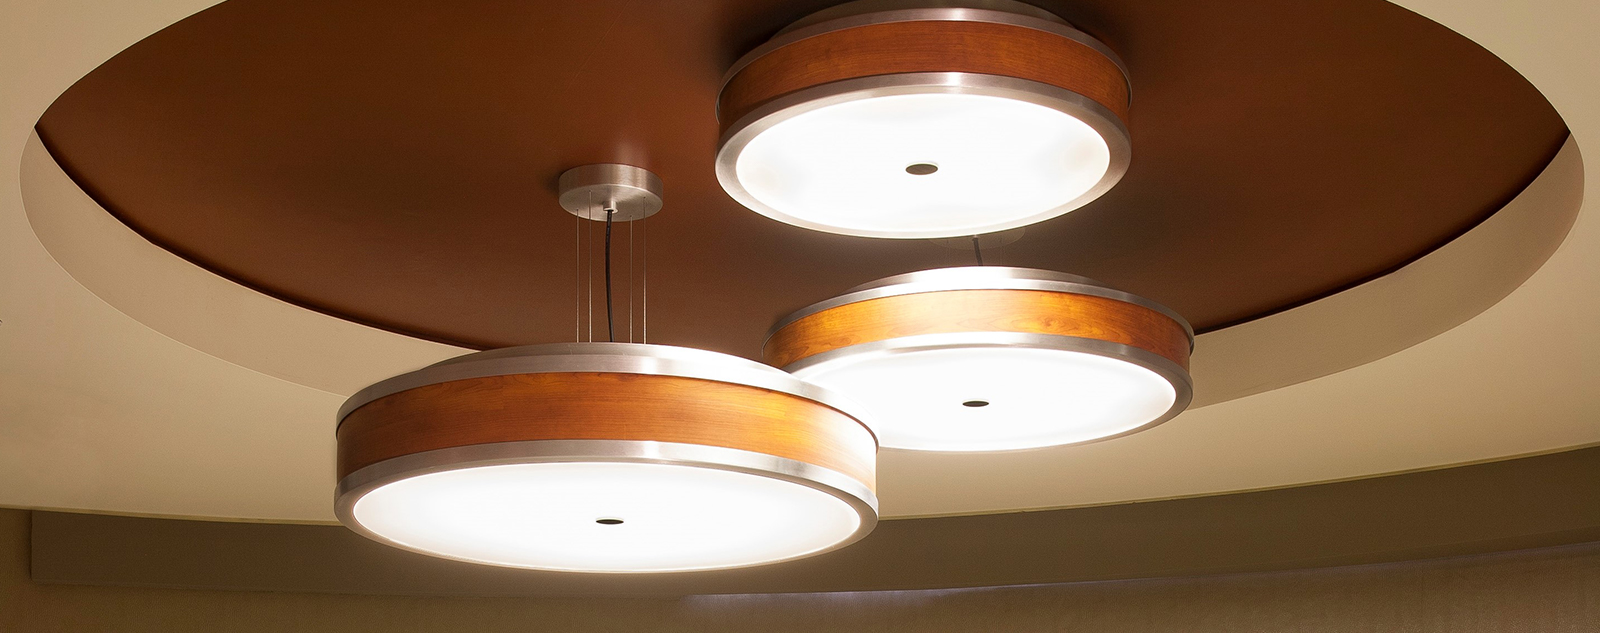 Winona_Category_Ceiling_1600x633